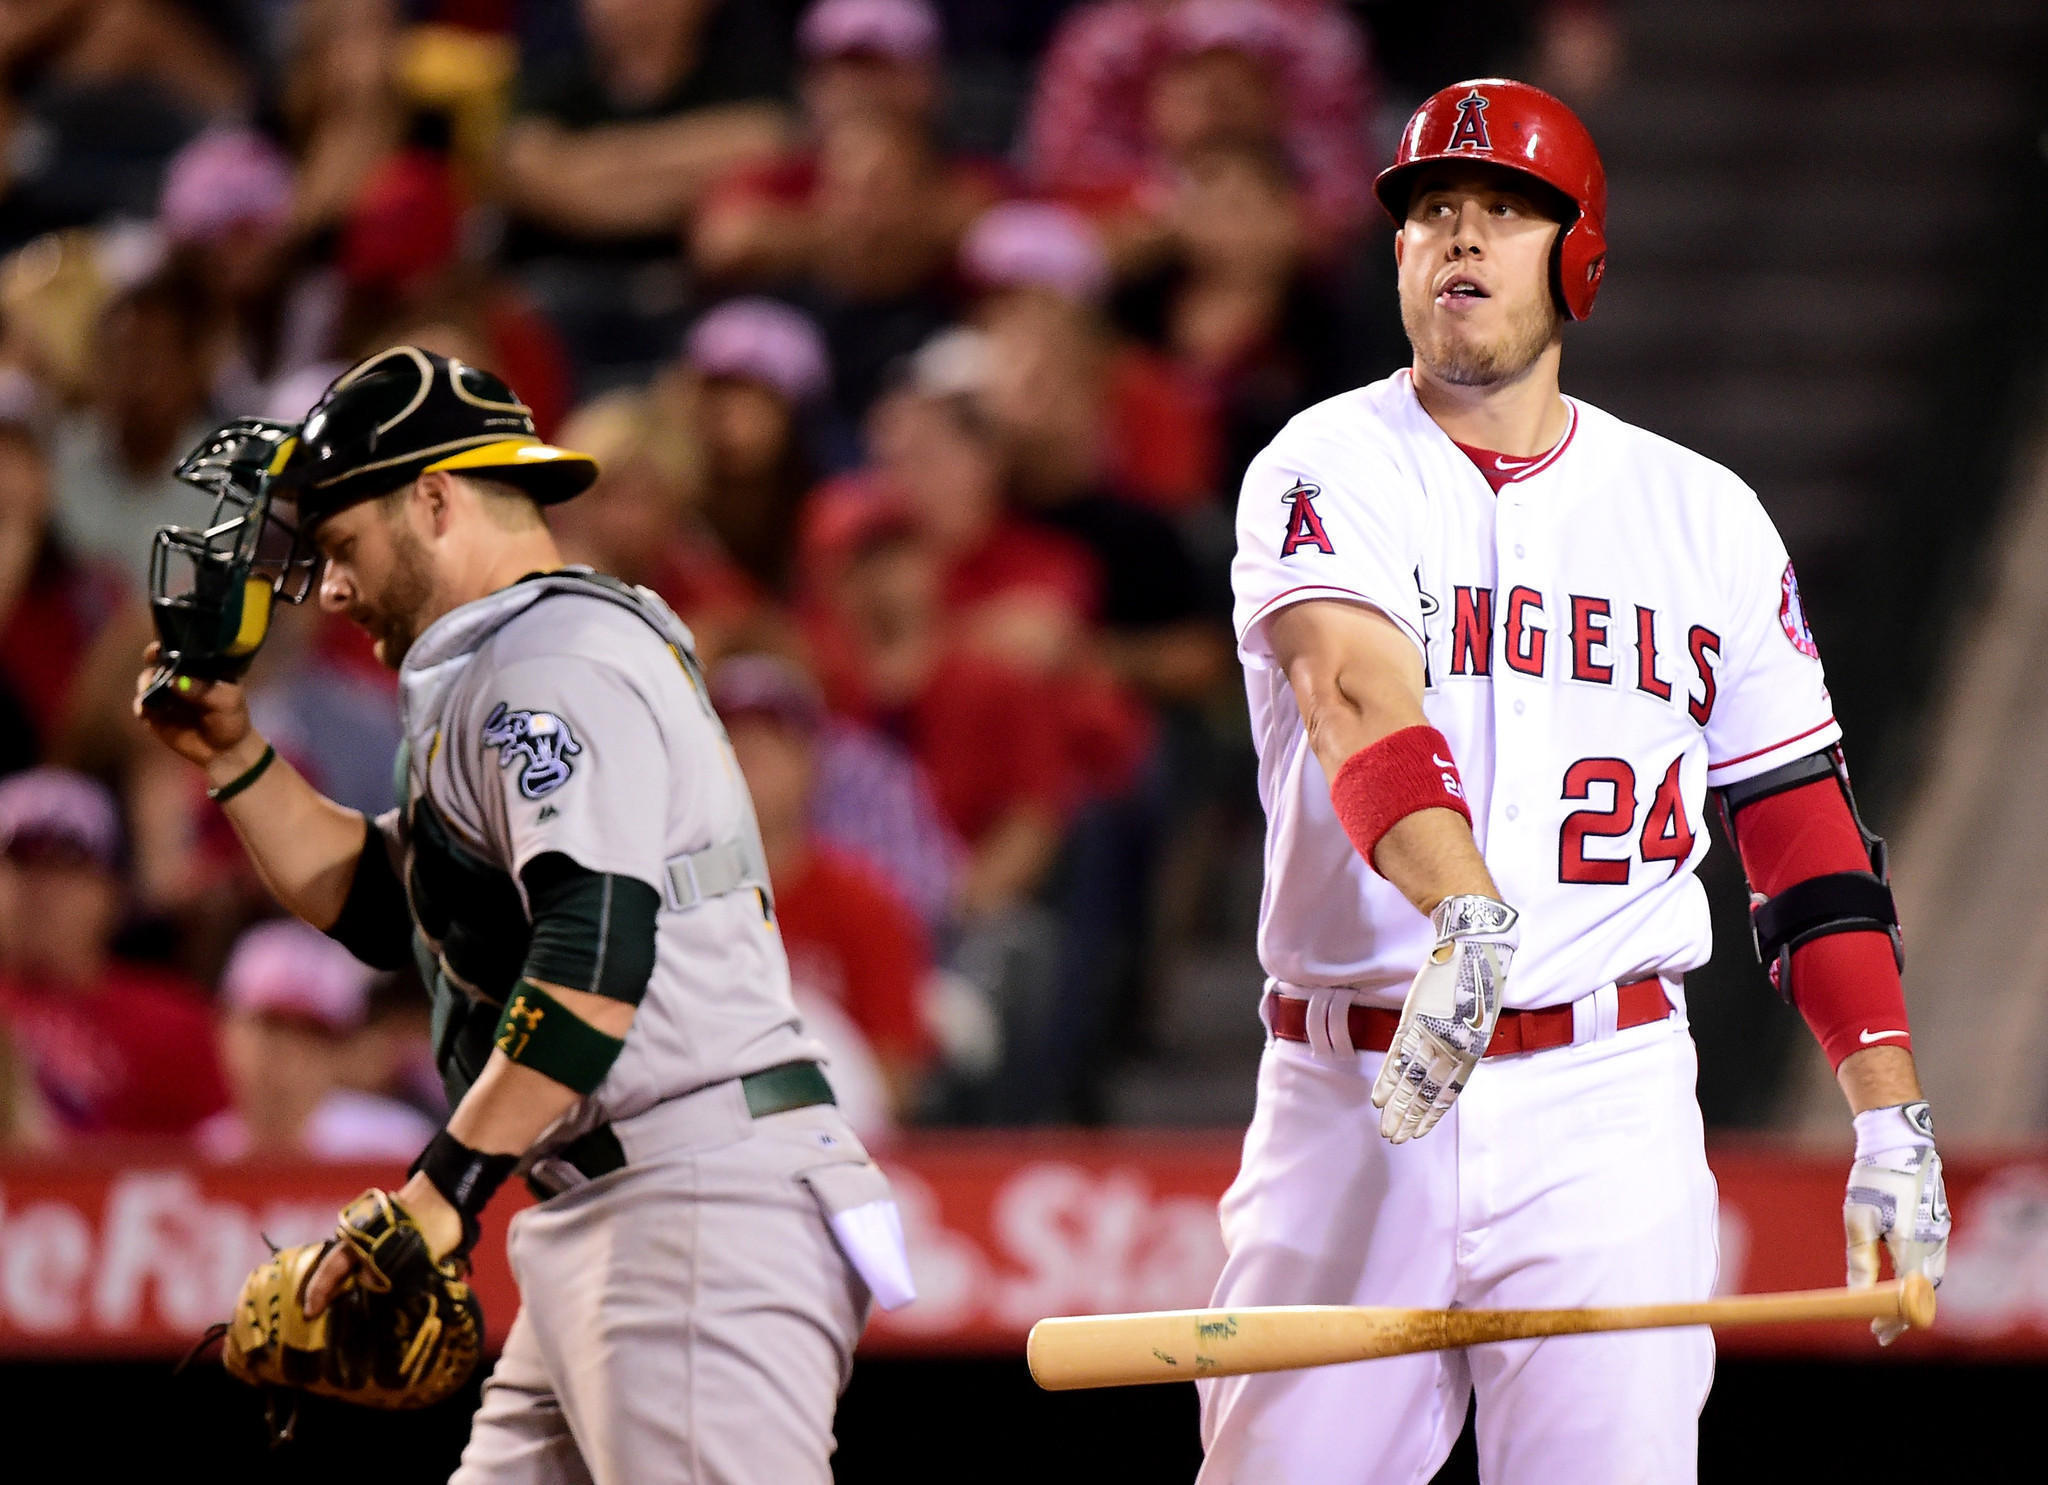 La-sp-angels-athletics-20160624-snap